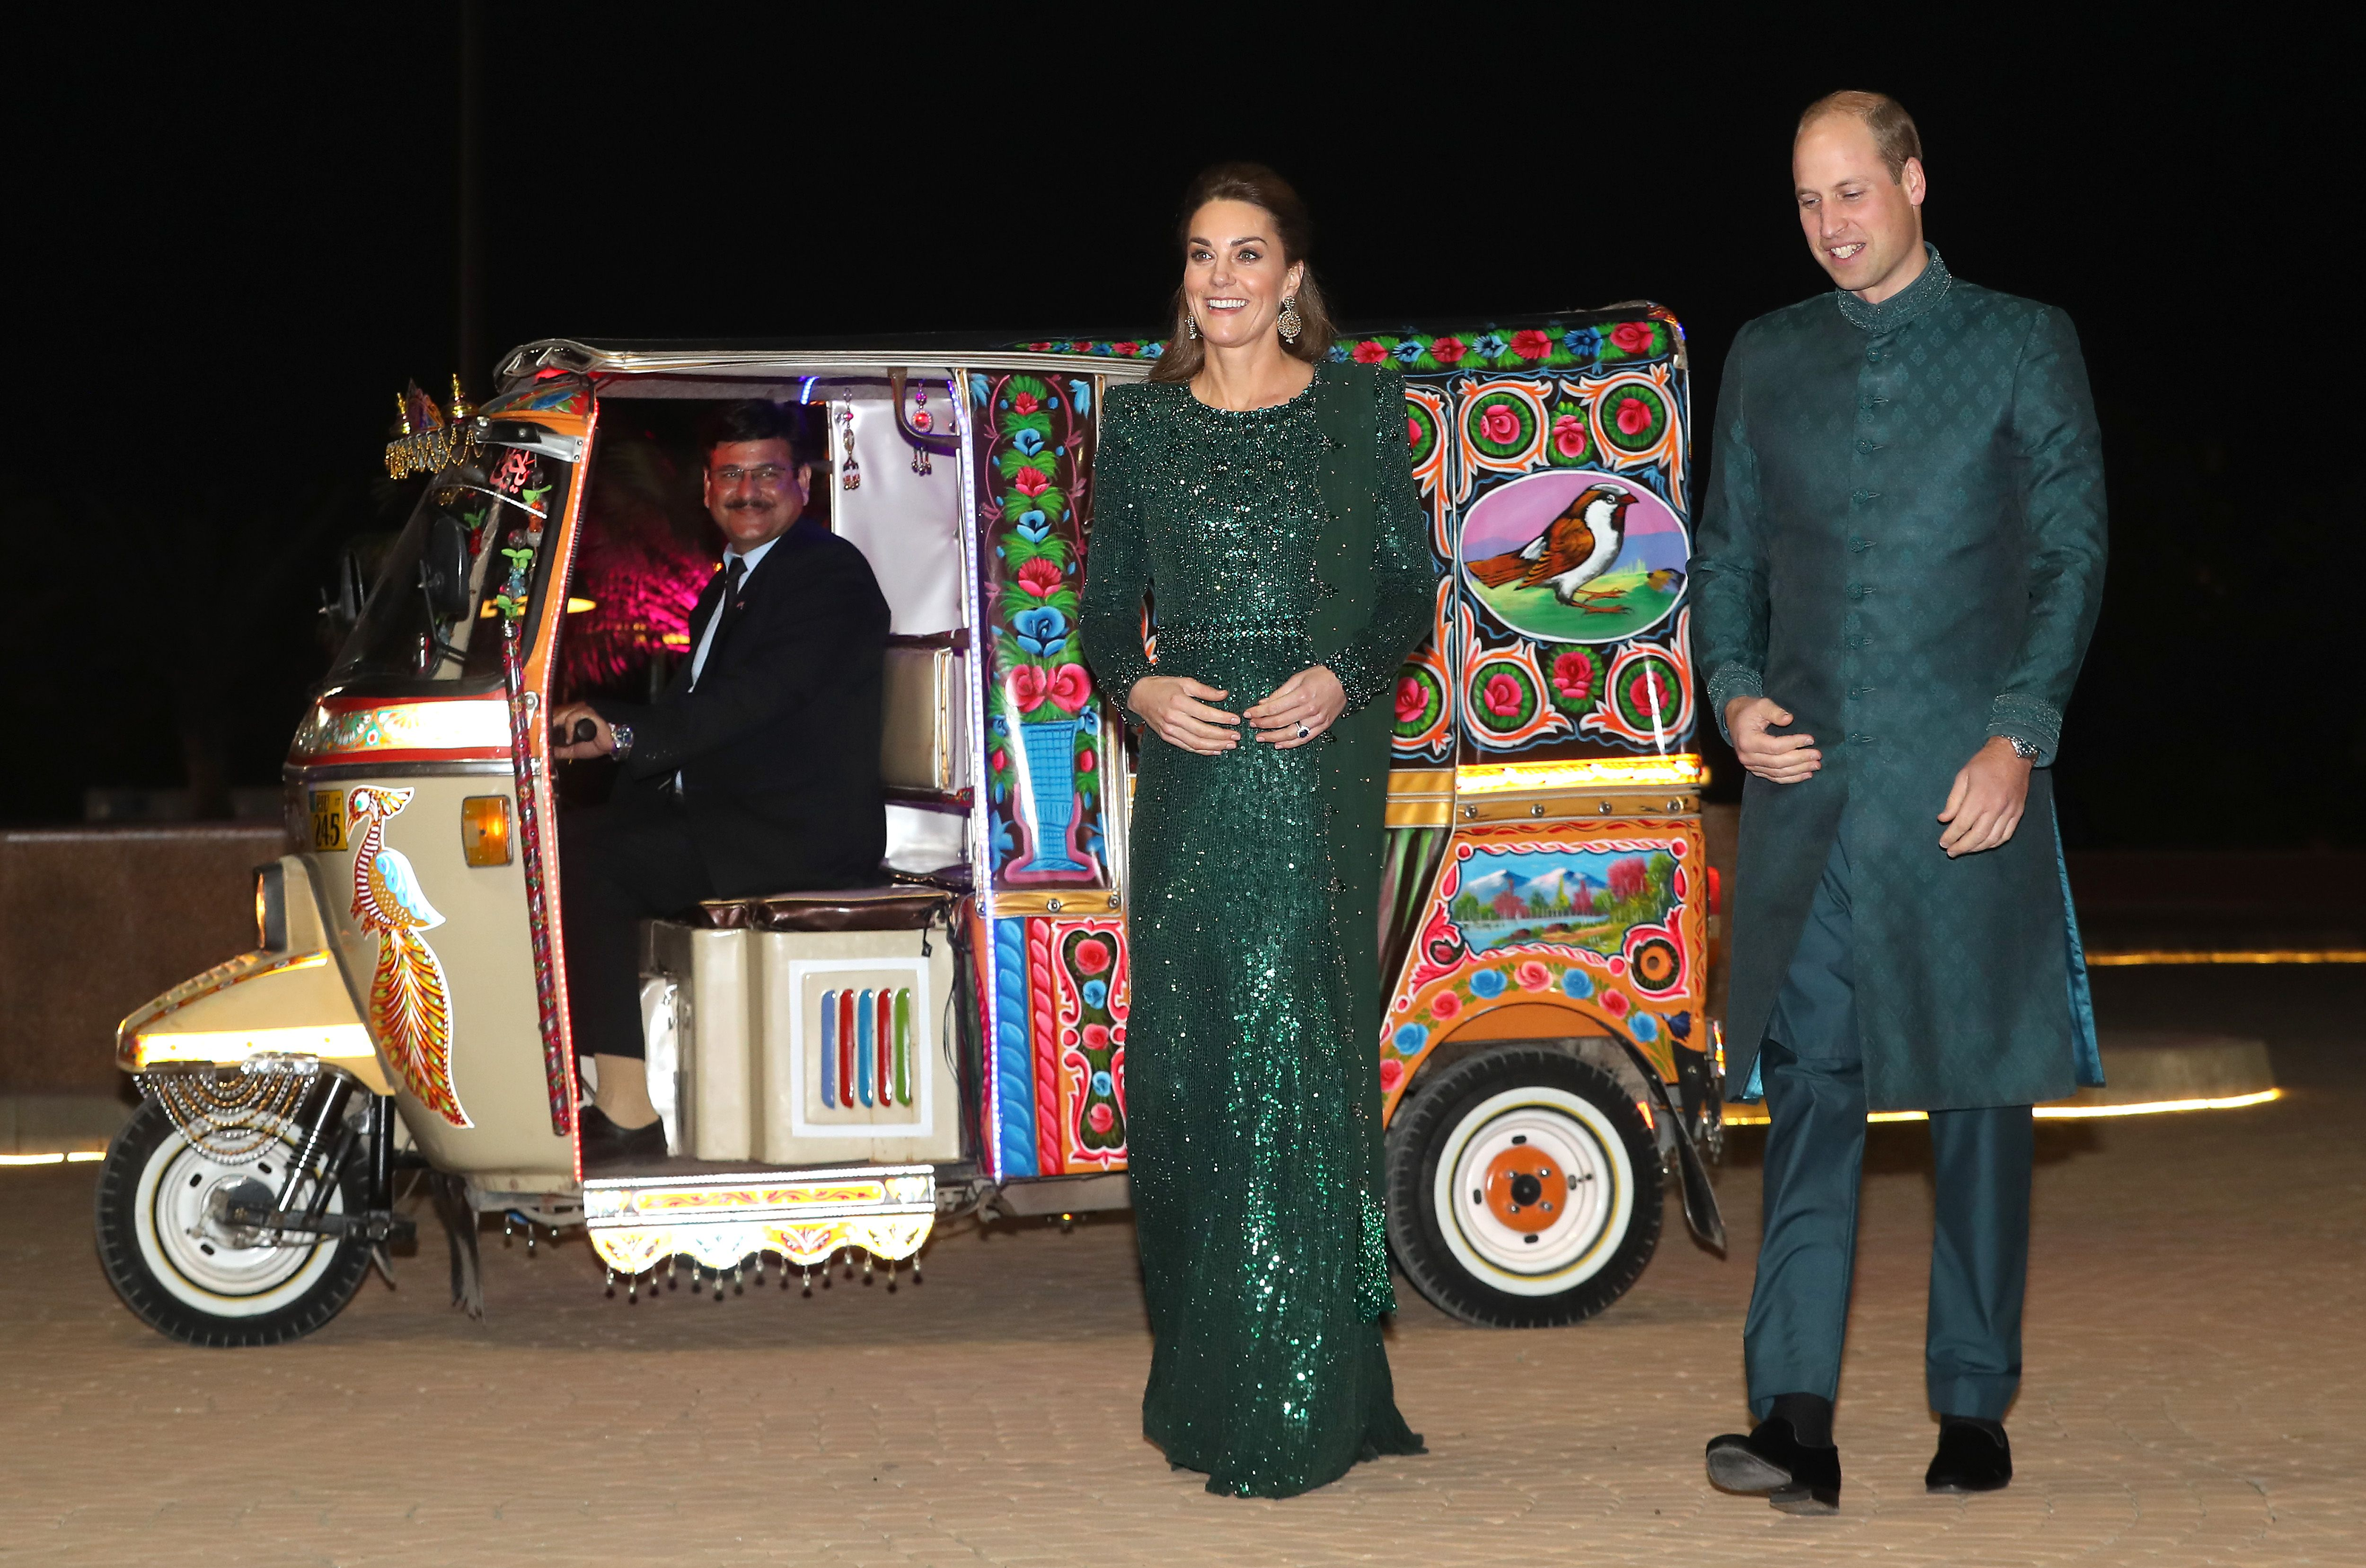 Kate Middleton Shimmers in a Green Jenny Packman Gown at a Reception in Pakistan